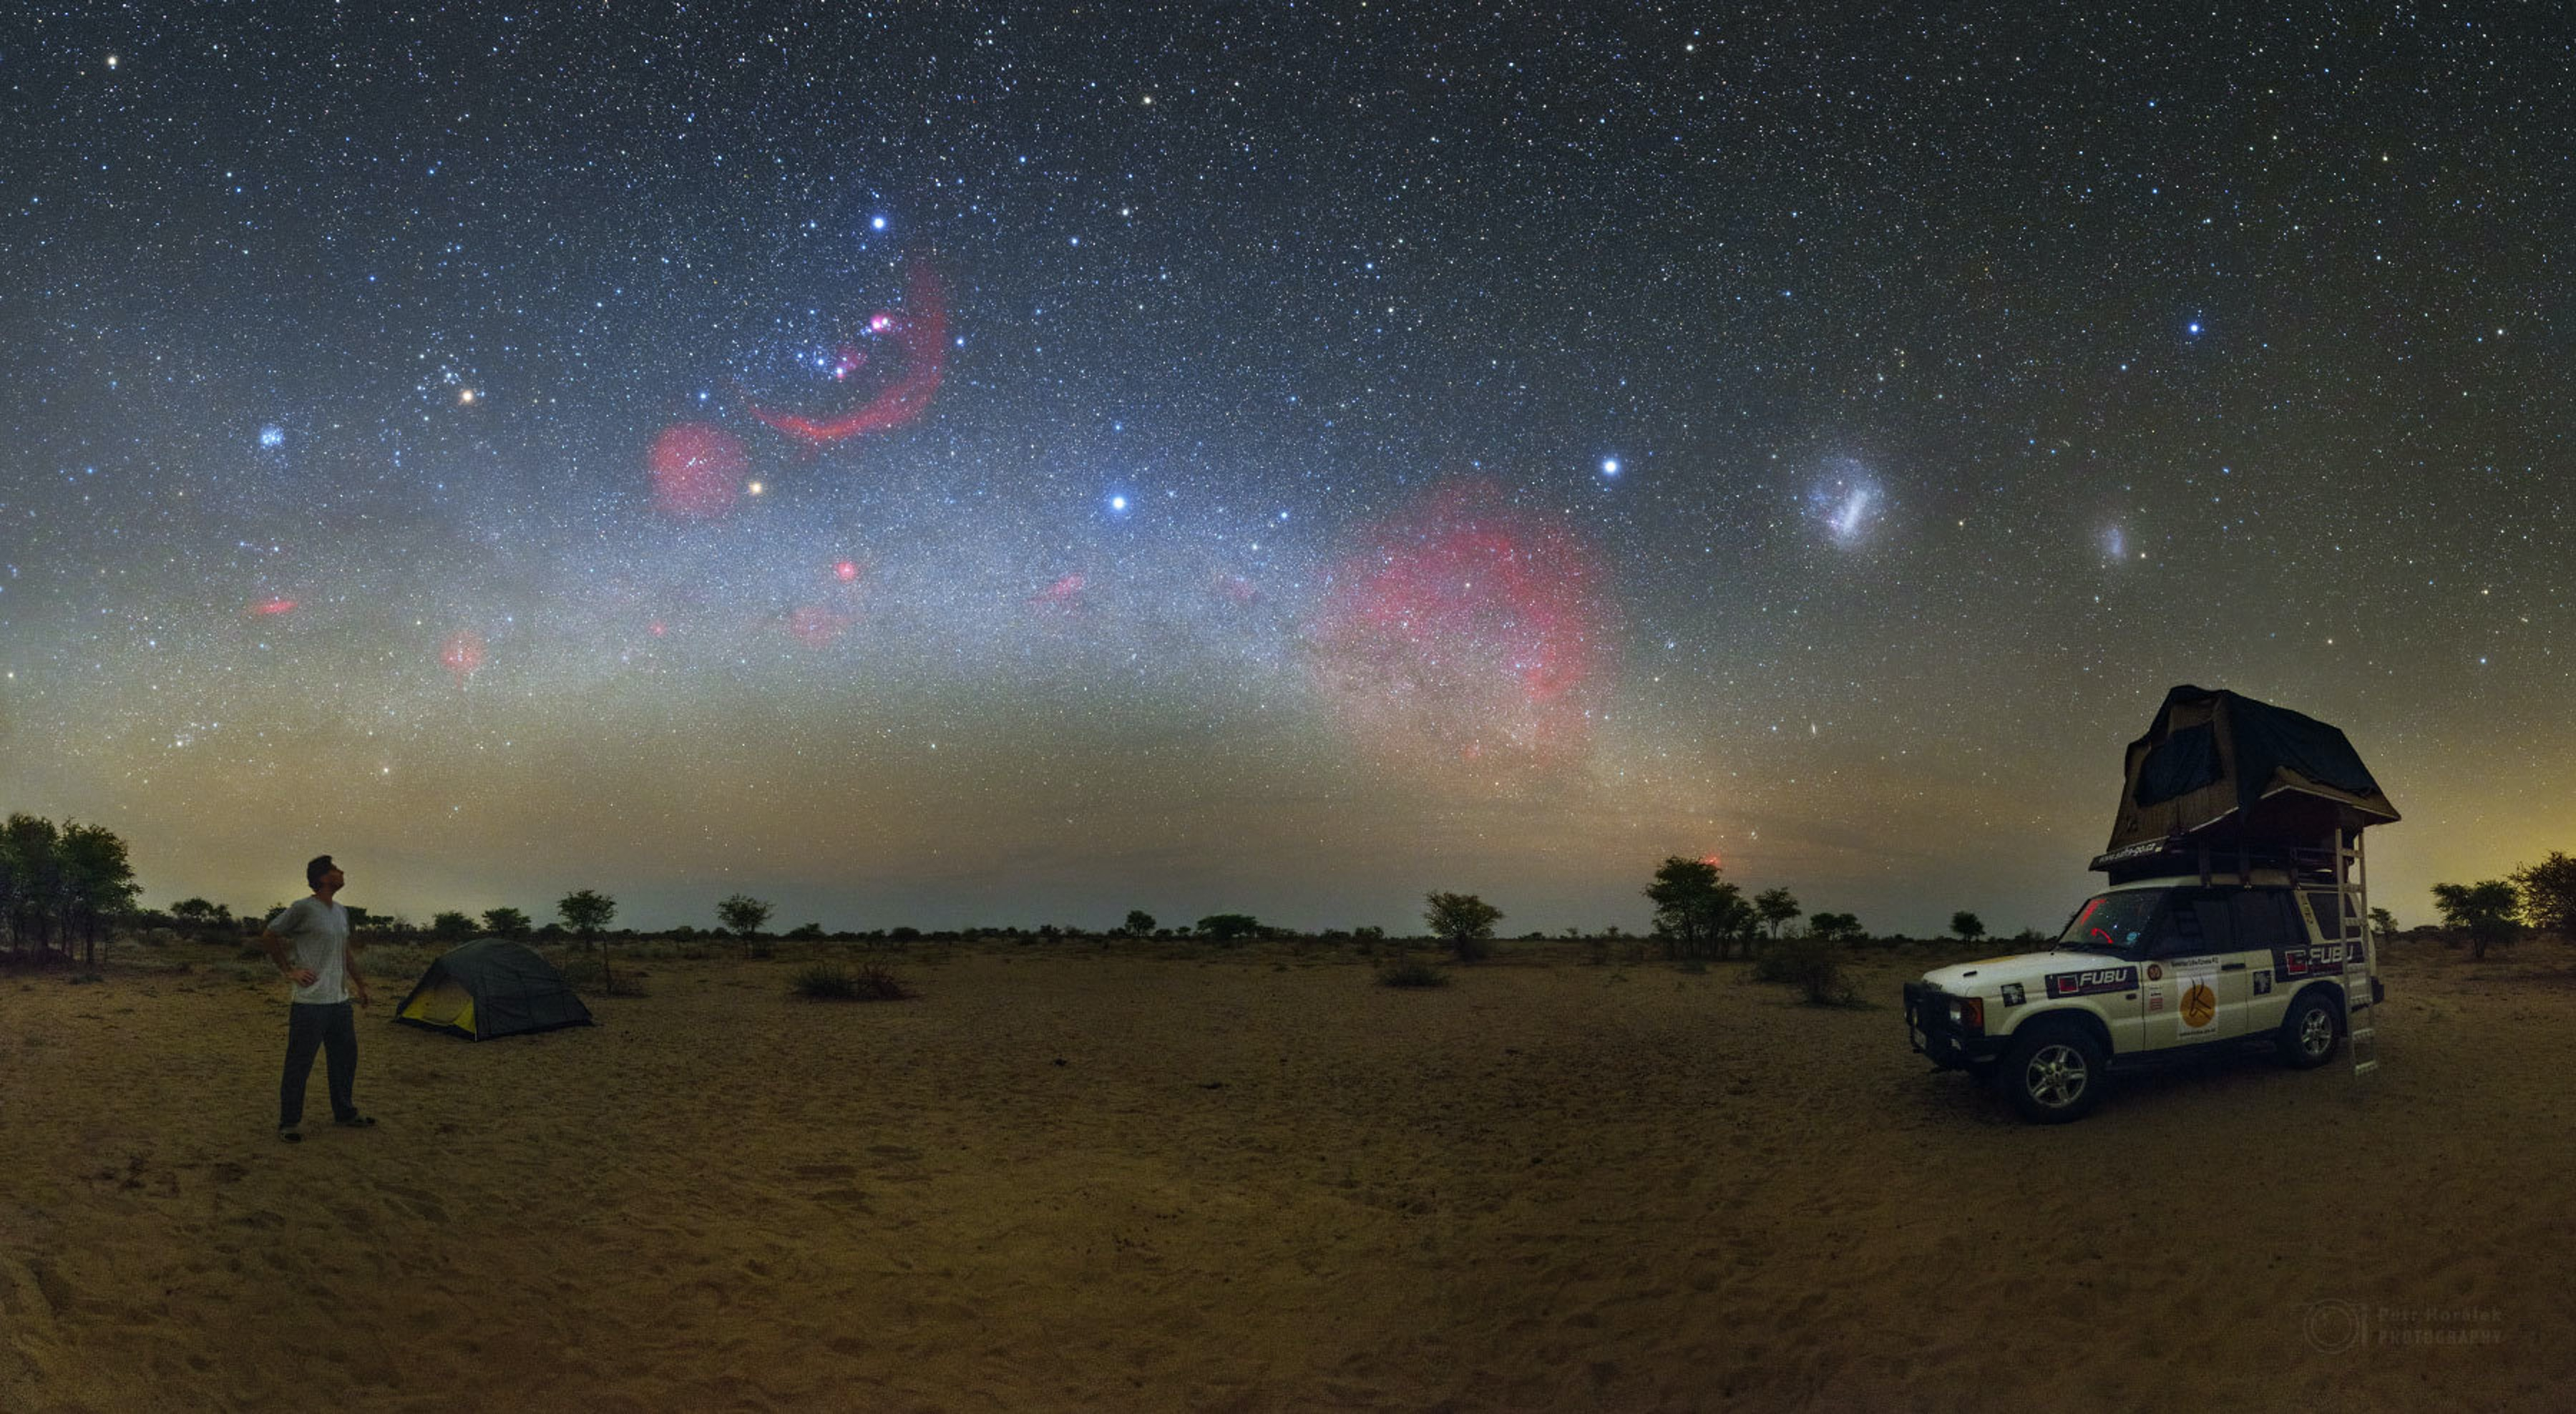 This Night Sky Photo Shows How Light Pollution Blinds Us